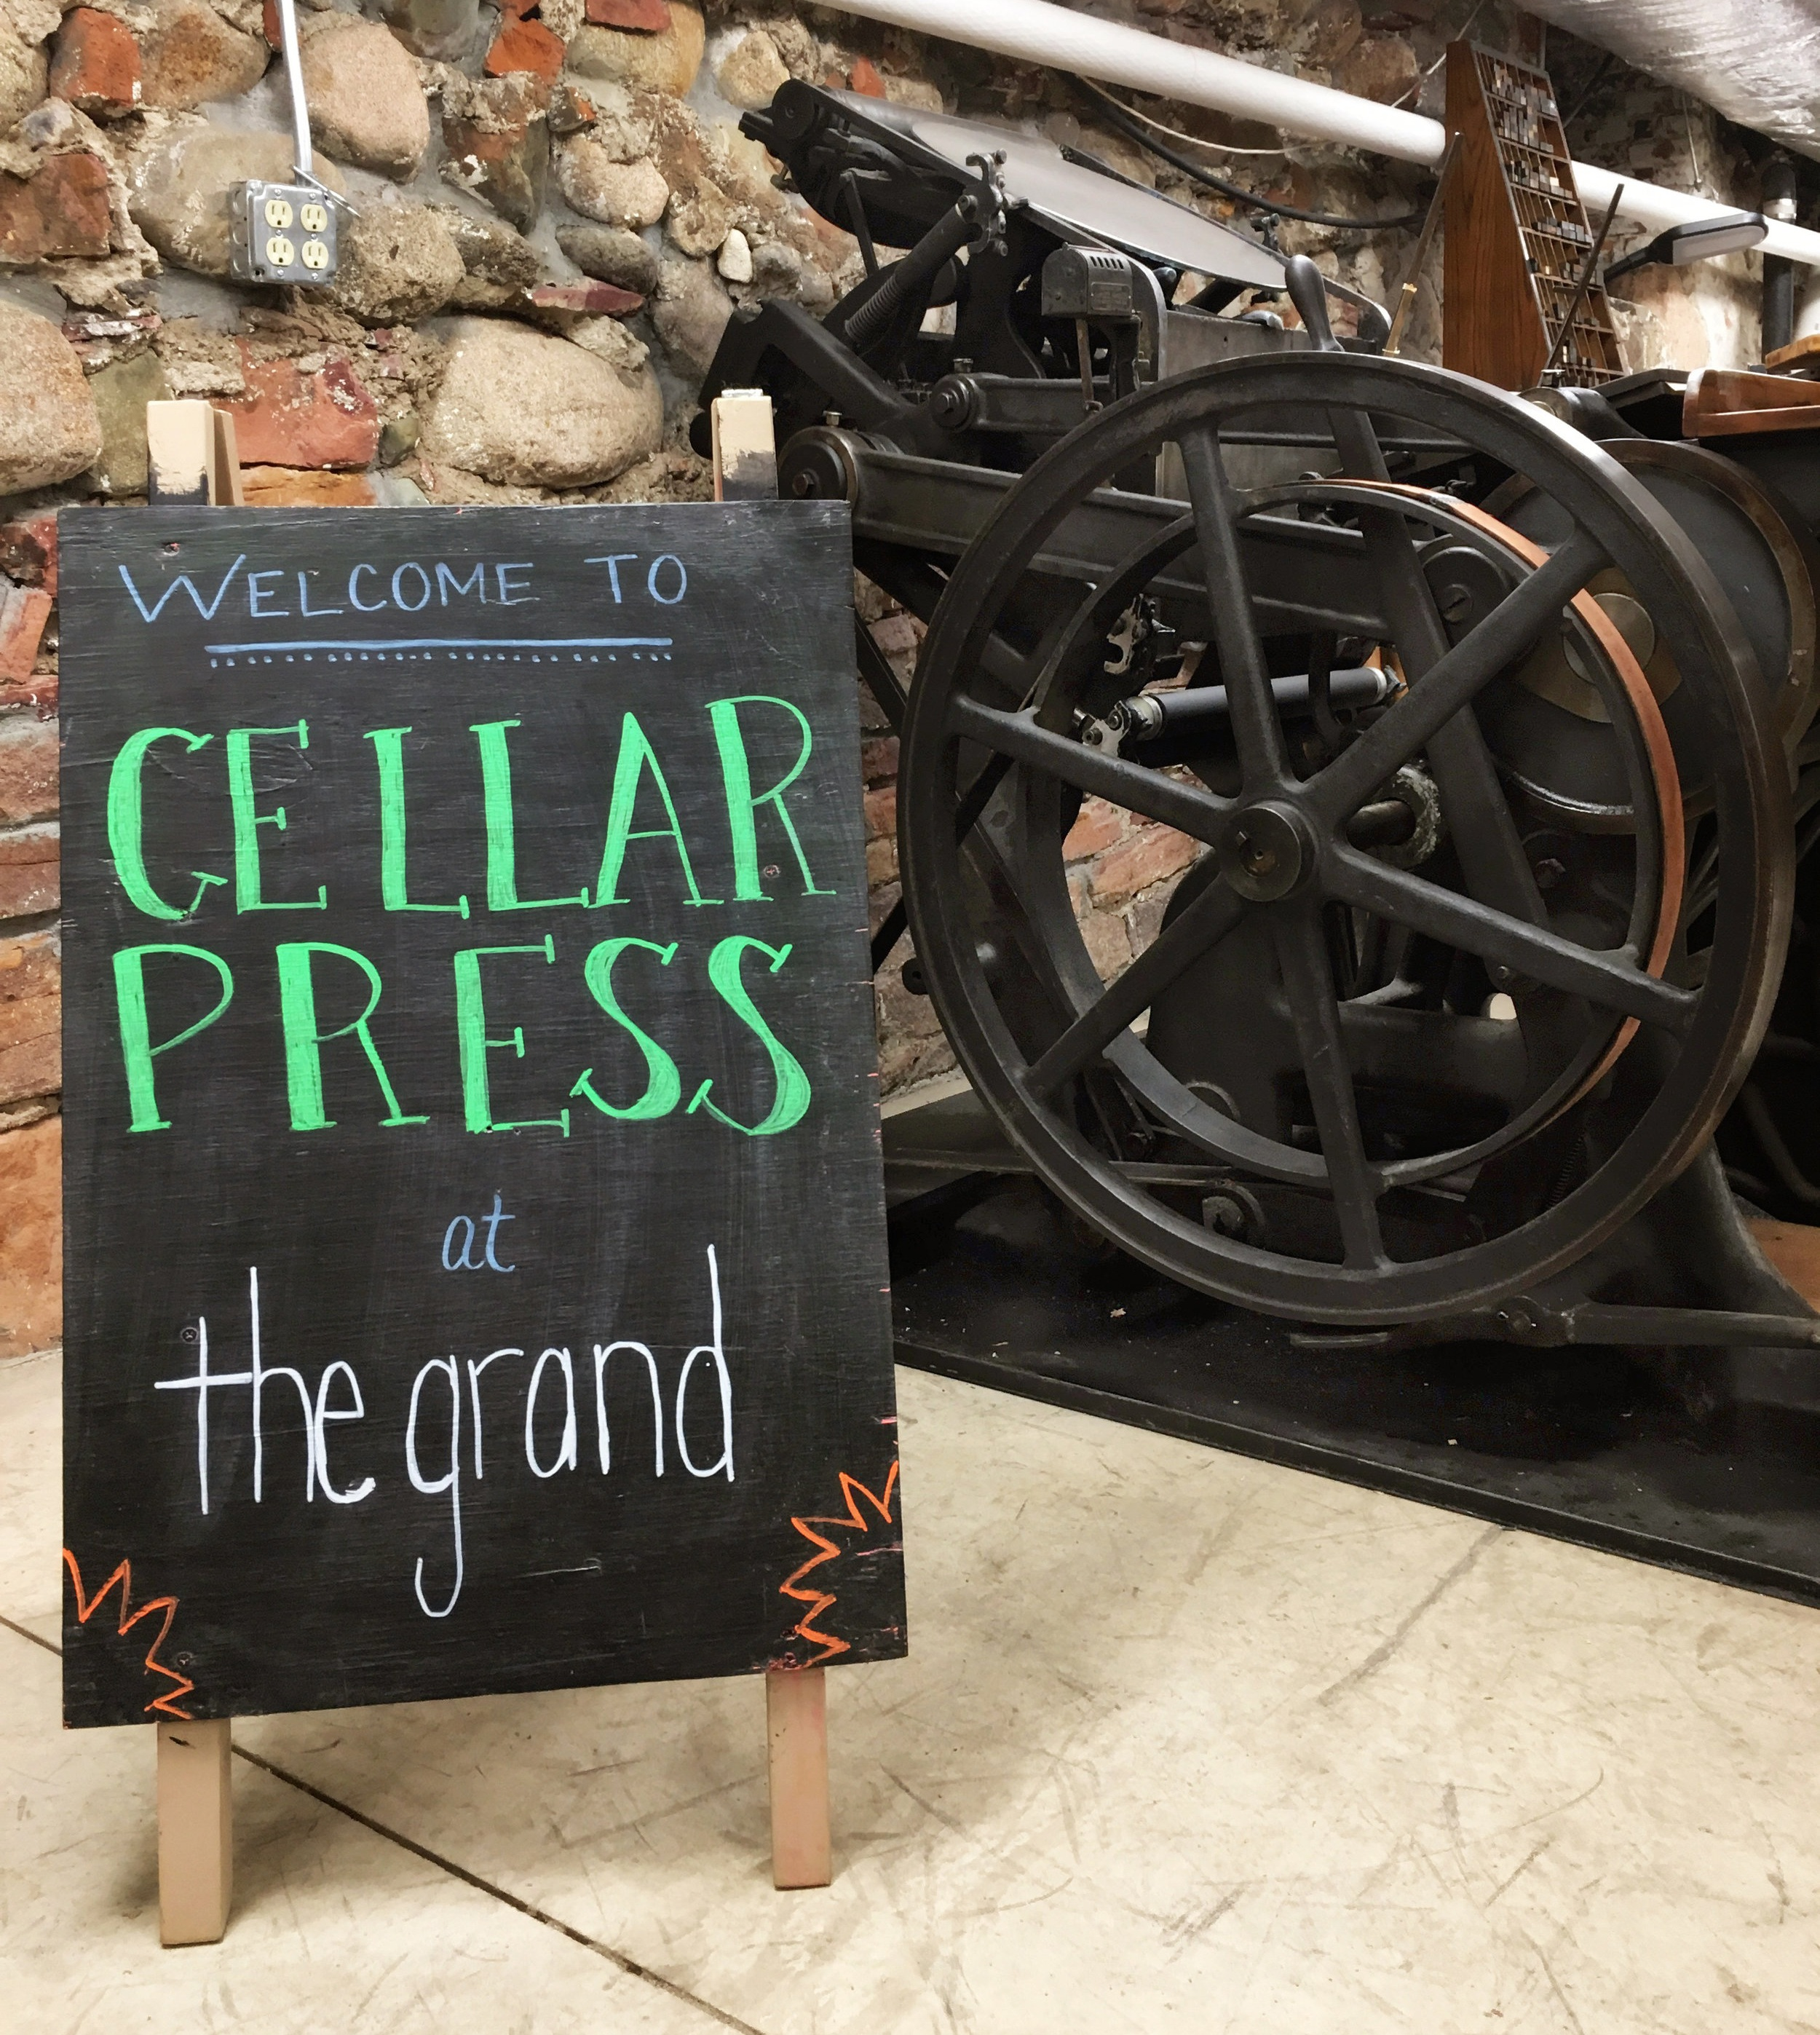 Cellar+Press+at+The+Grand+Center+for+Arts+%26+Culture